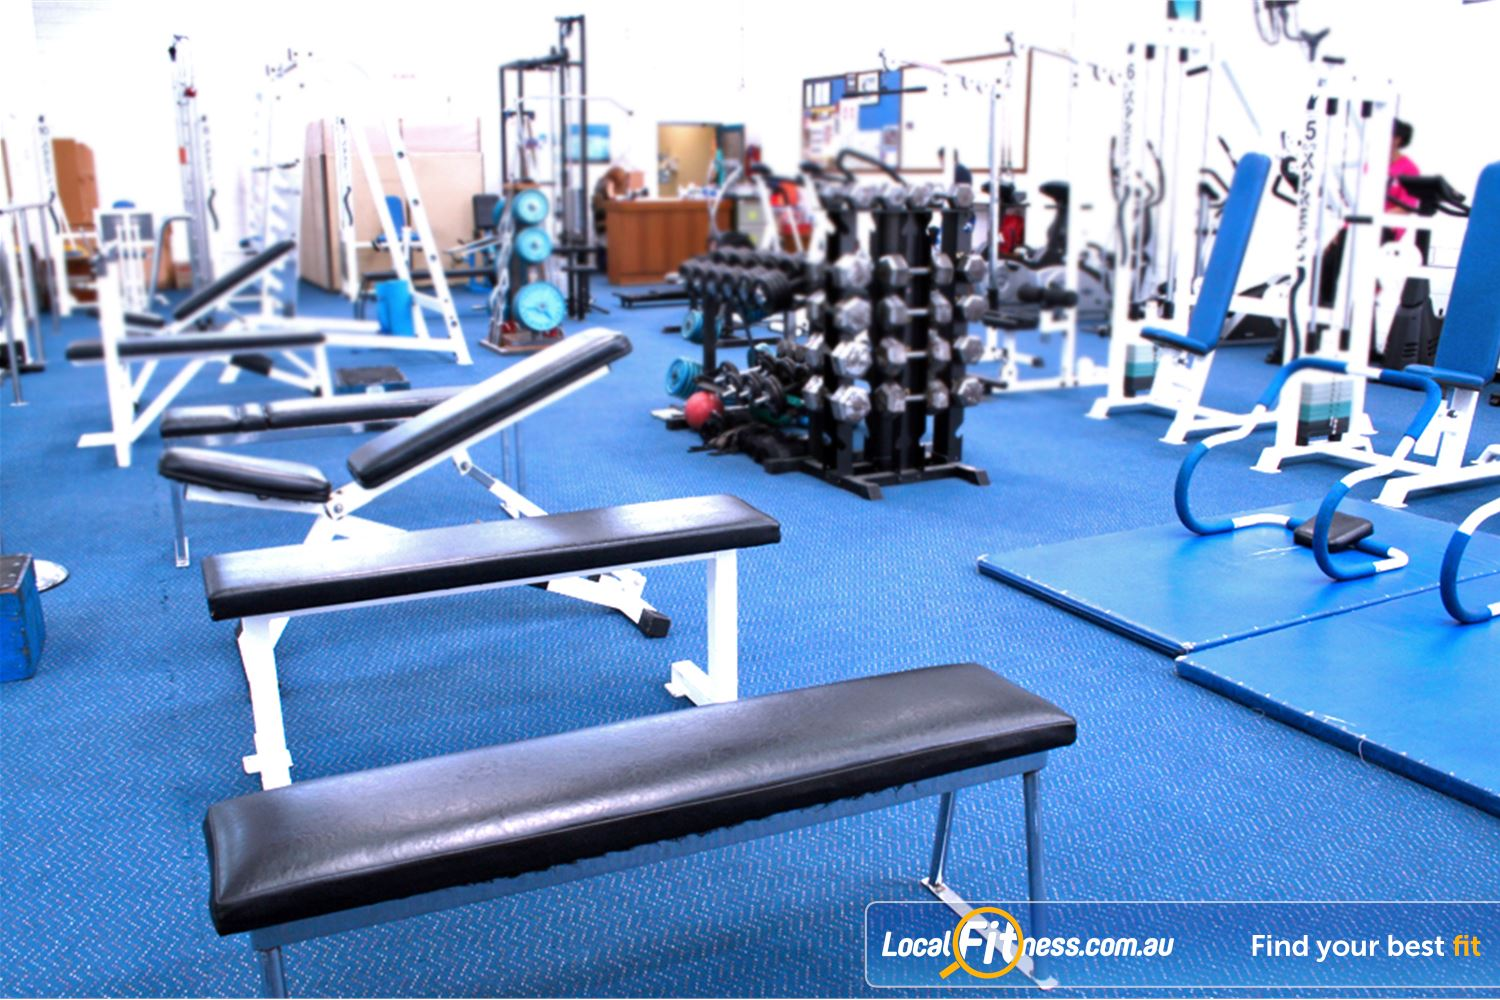 Leading Edge Health & Fitness Near Notting Hill Our Glen Waverley free-weights area includes benches, dumbells and more.